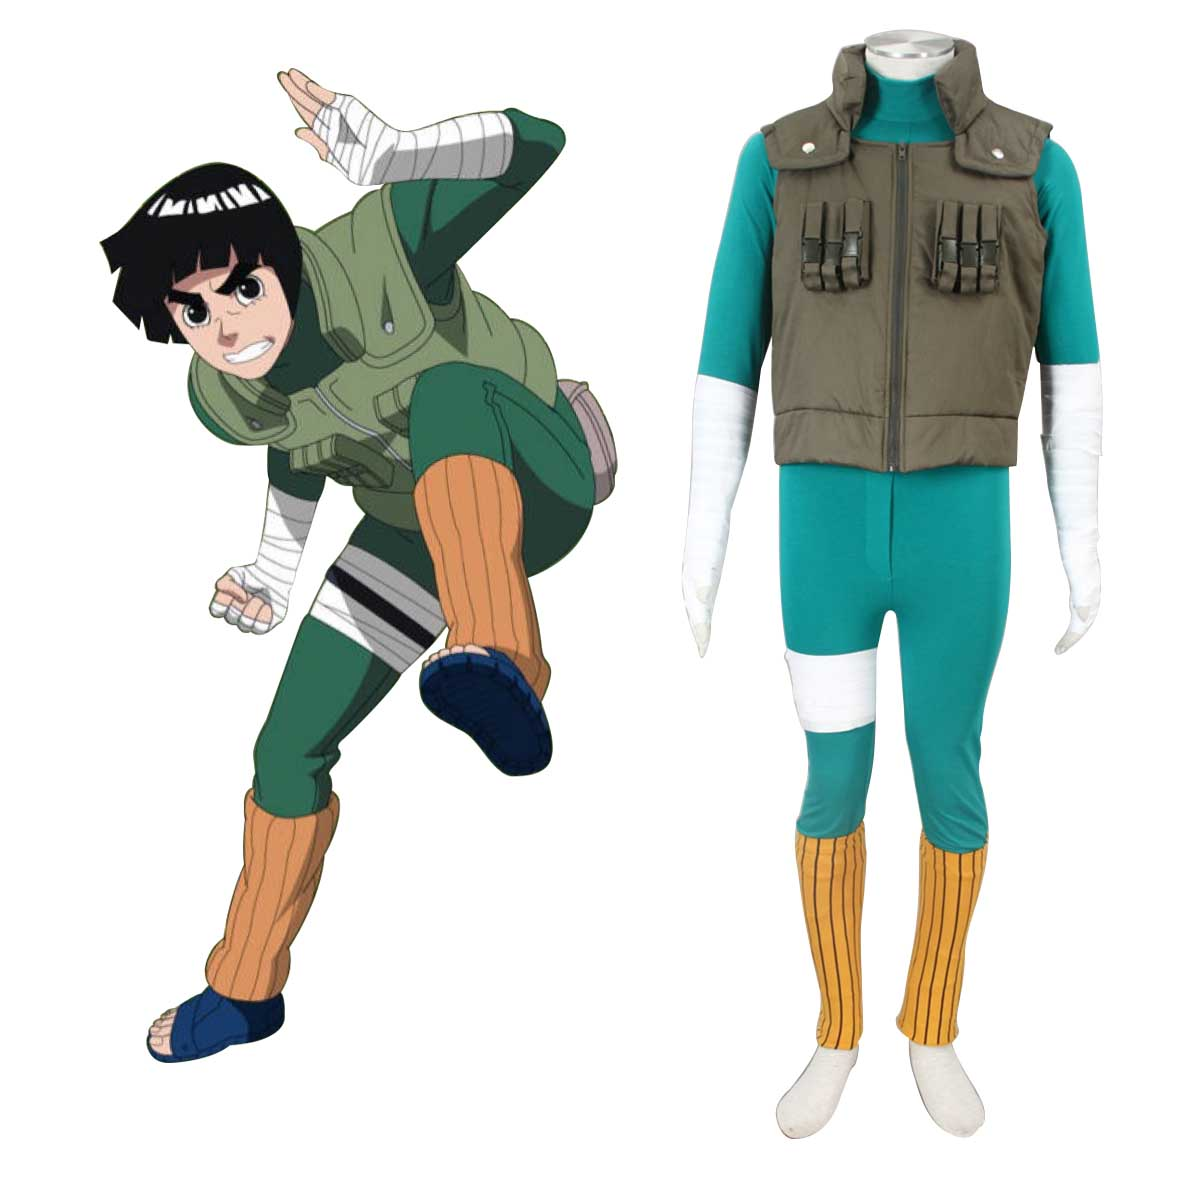 Naruto Shippuden Rock Lee 2 Anime Cosplay Costumes Outfit